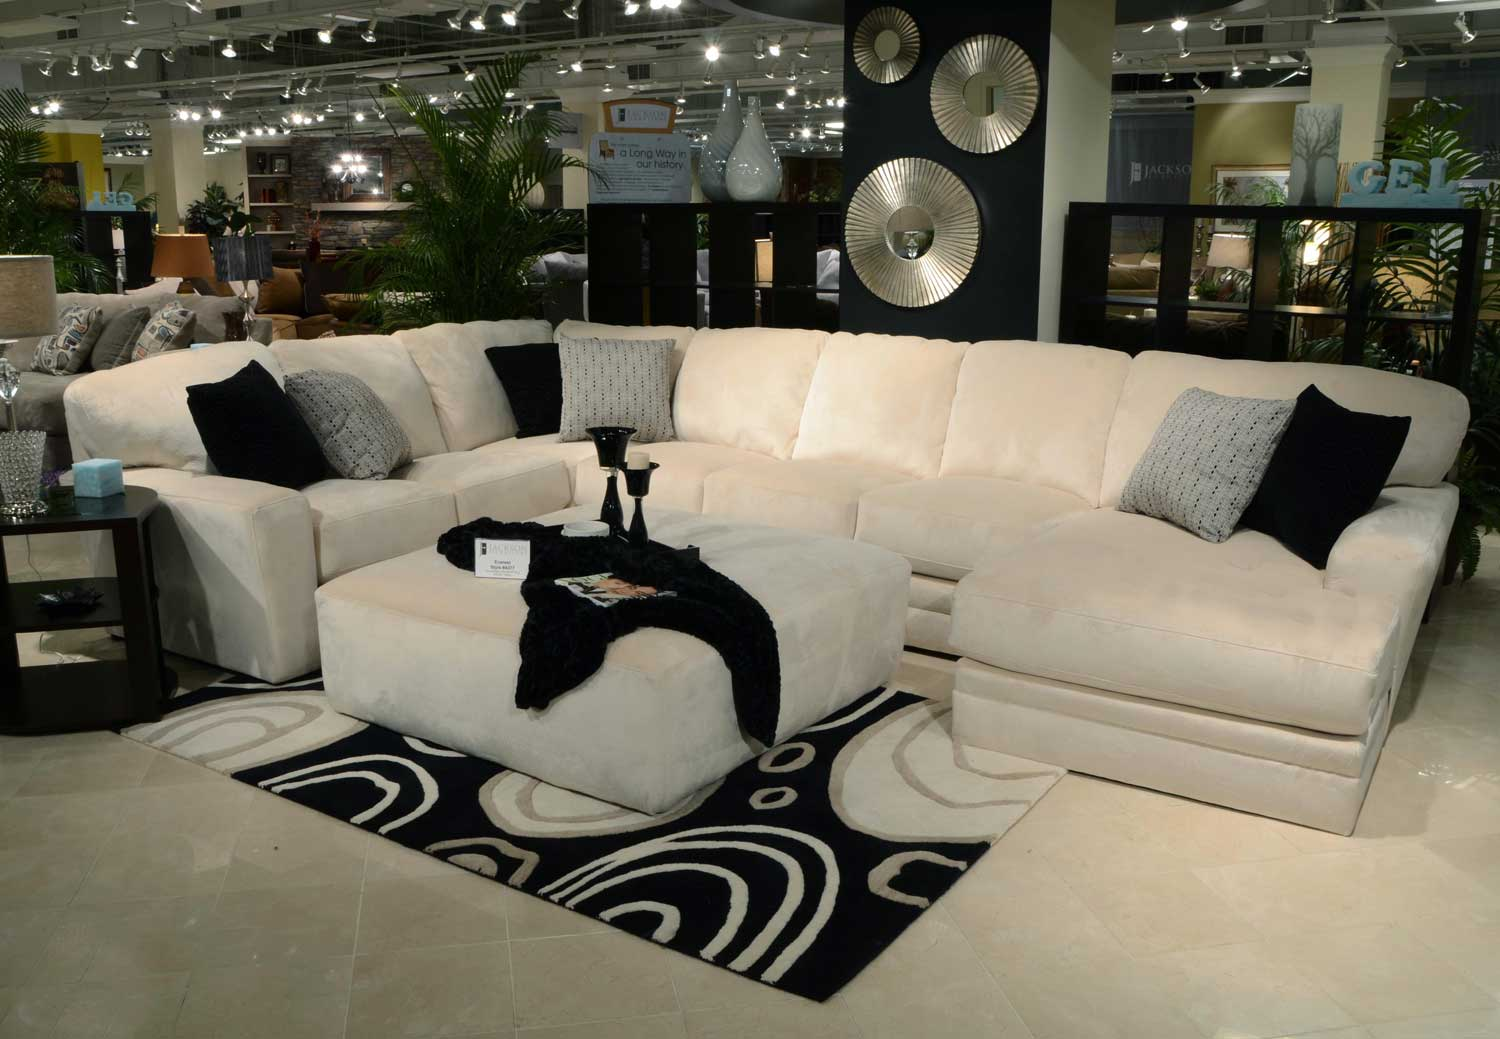 Jackson Everest Sectional Sofa Set B Ivory JF 4377 SECT